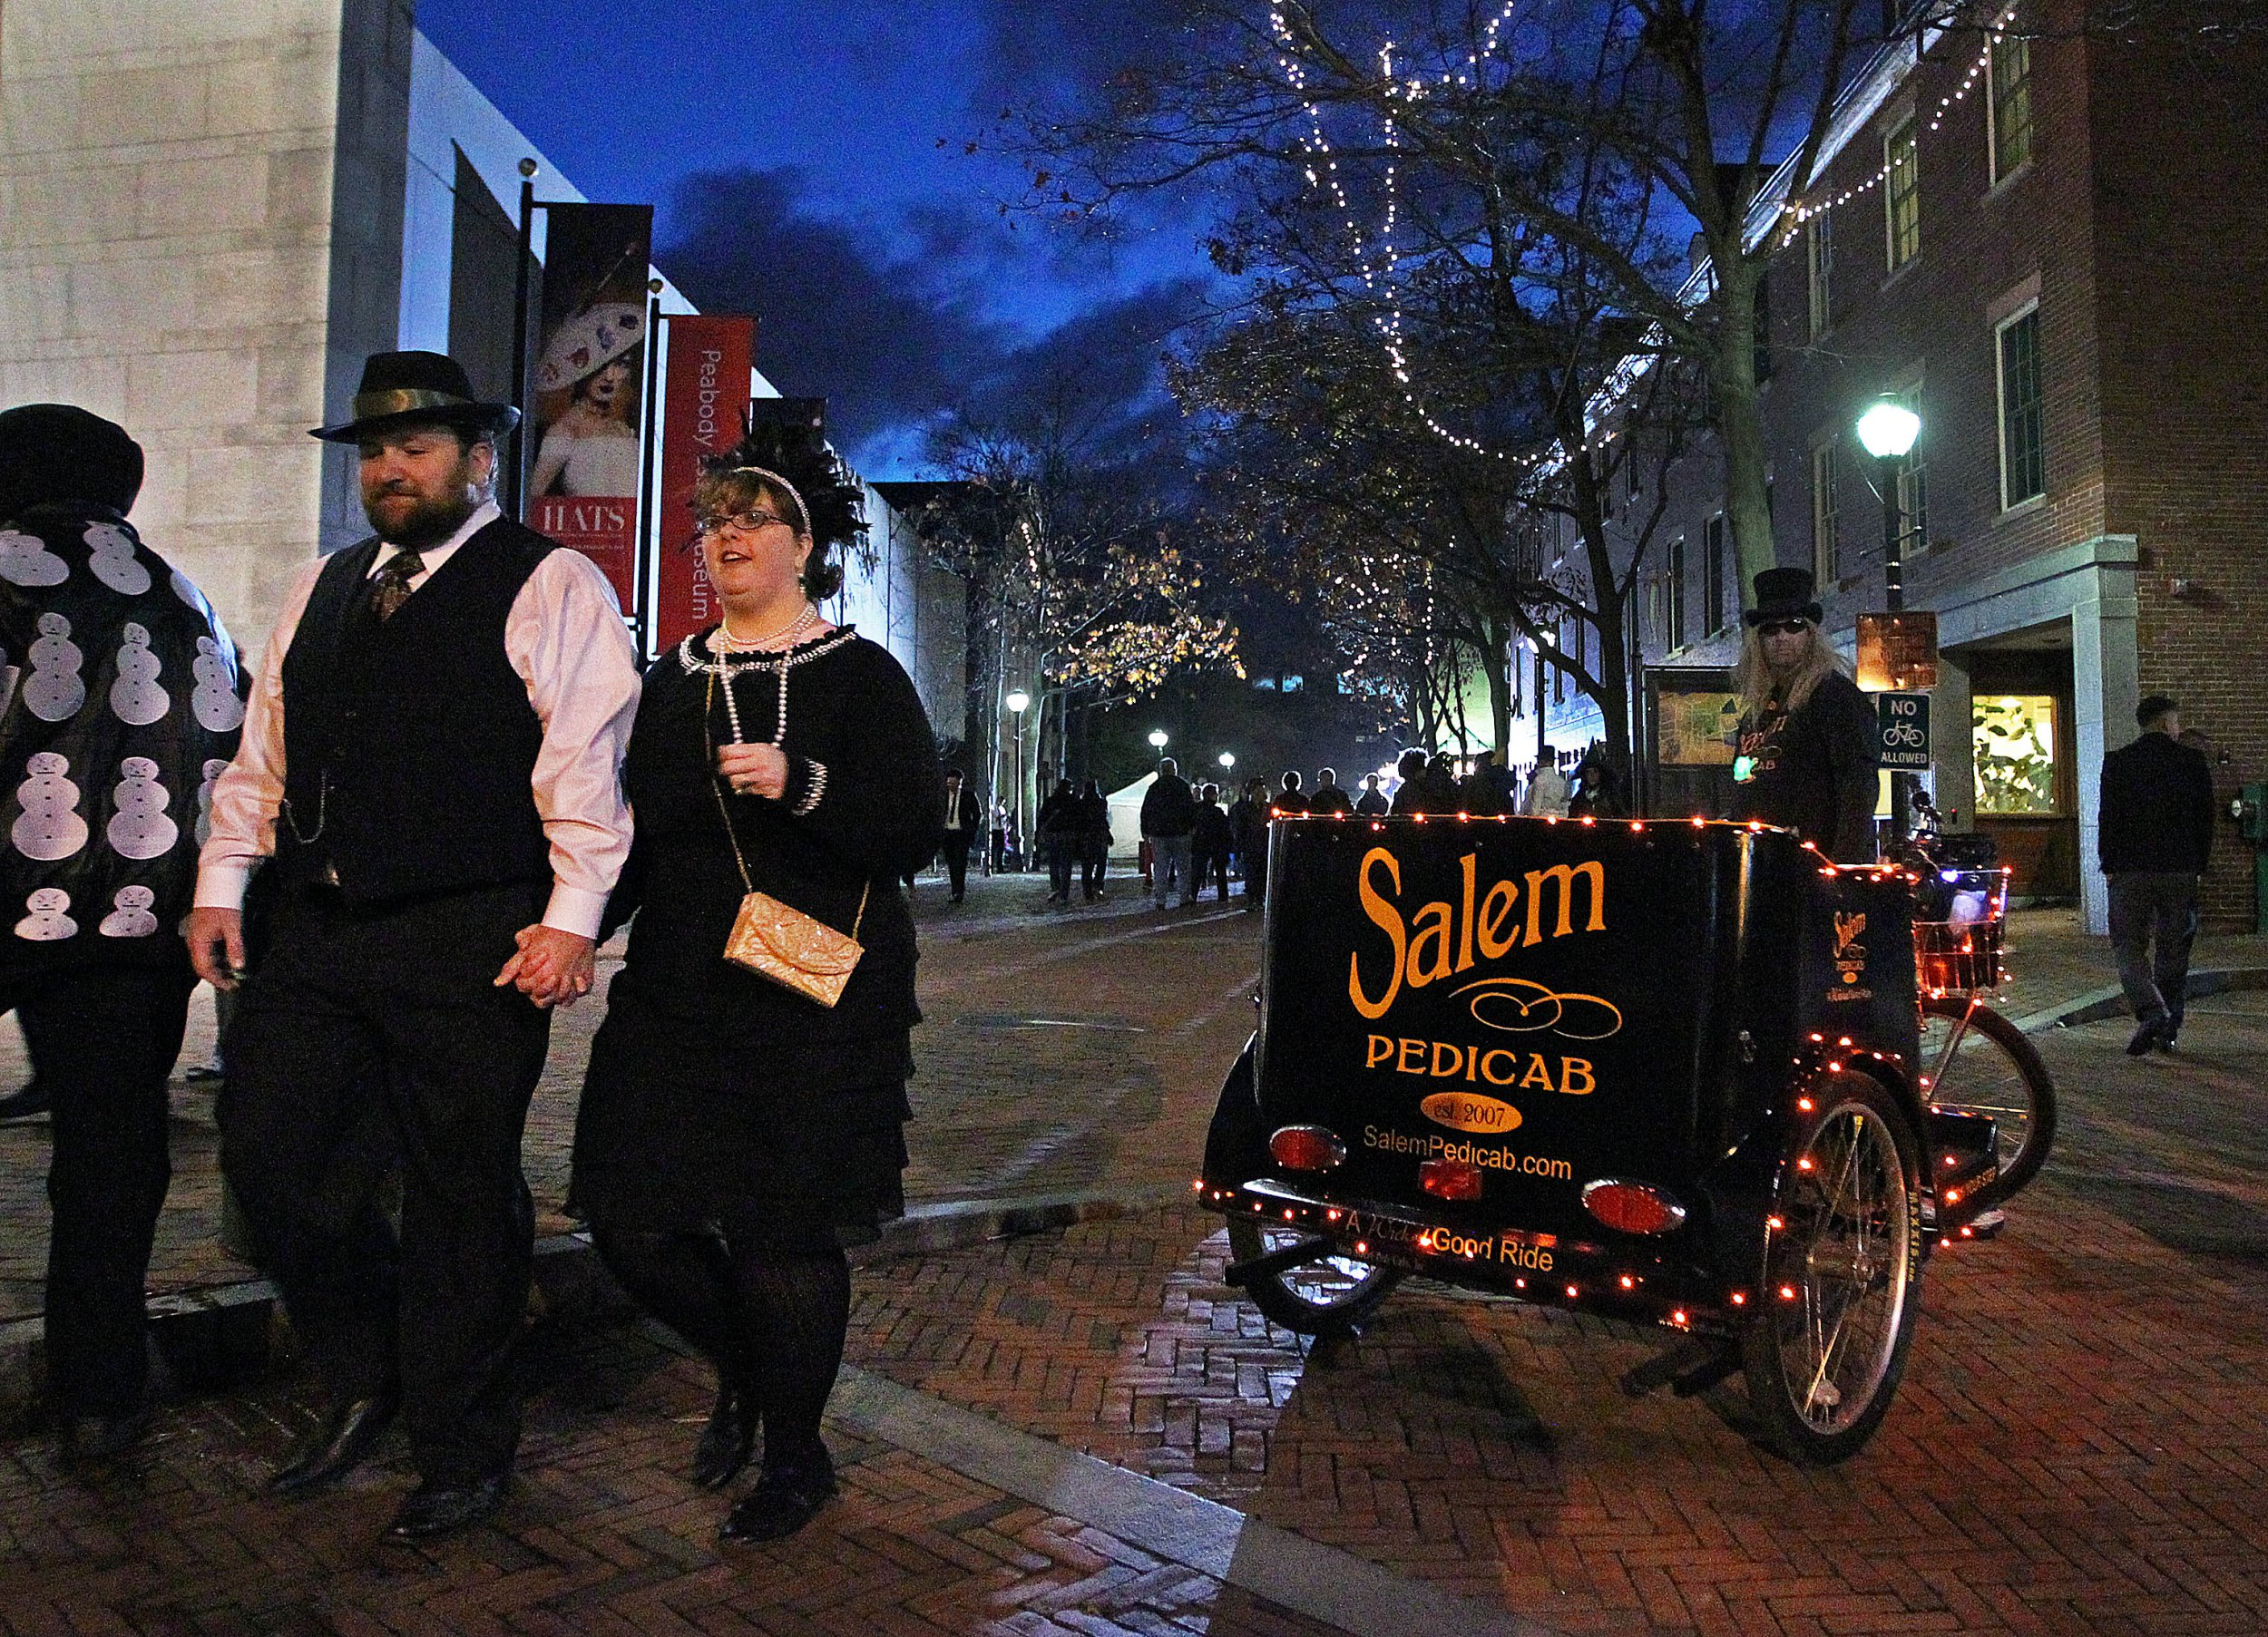 SALEM, MA - OCTOBER 31: The scene on Halloween evening in downtown Salem included revelers as well as businessmen offering pedicab rides. (Photo by Jim Davis/The Boston Globe via Getty Images)